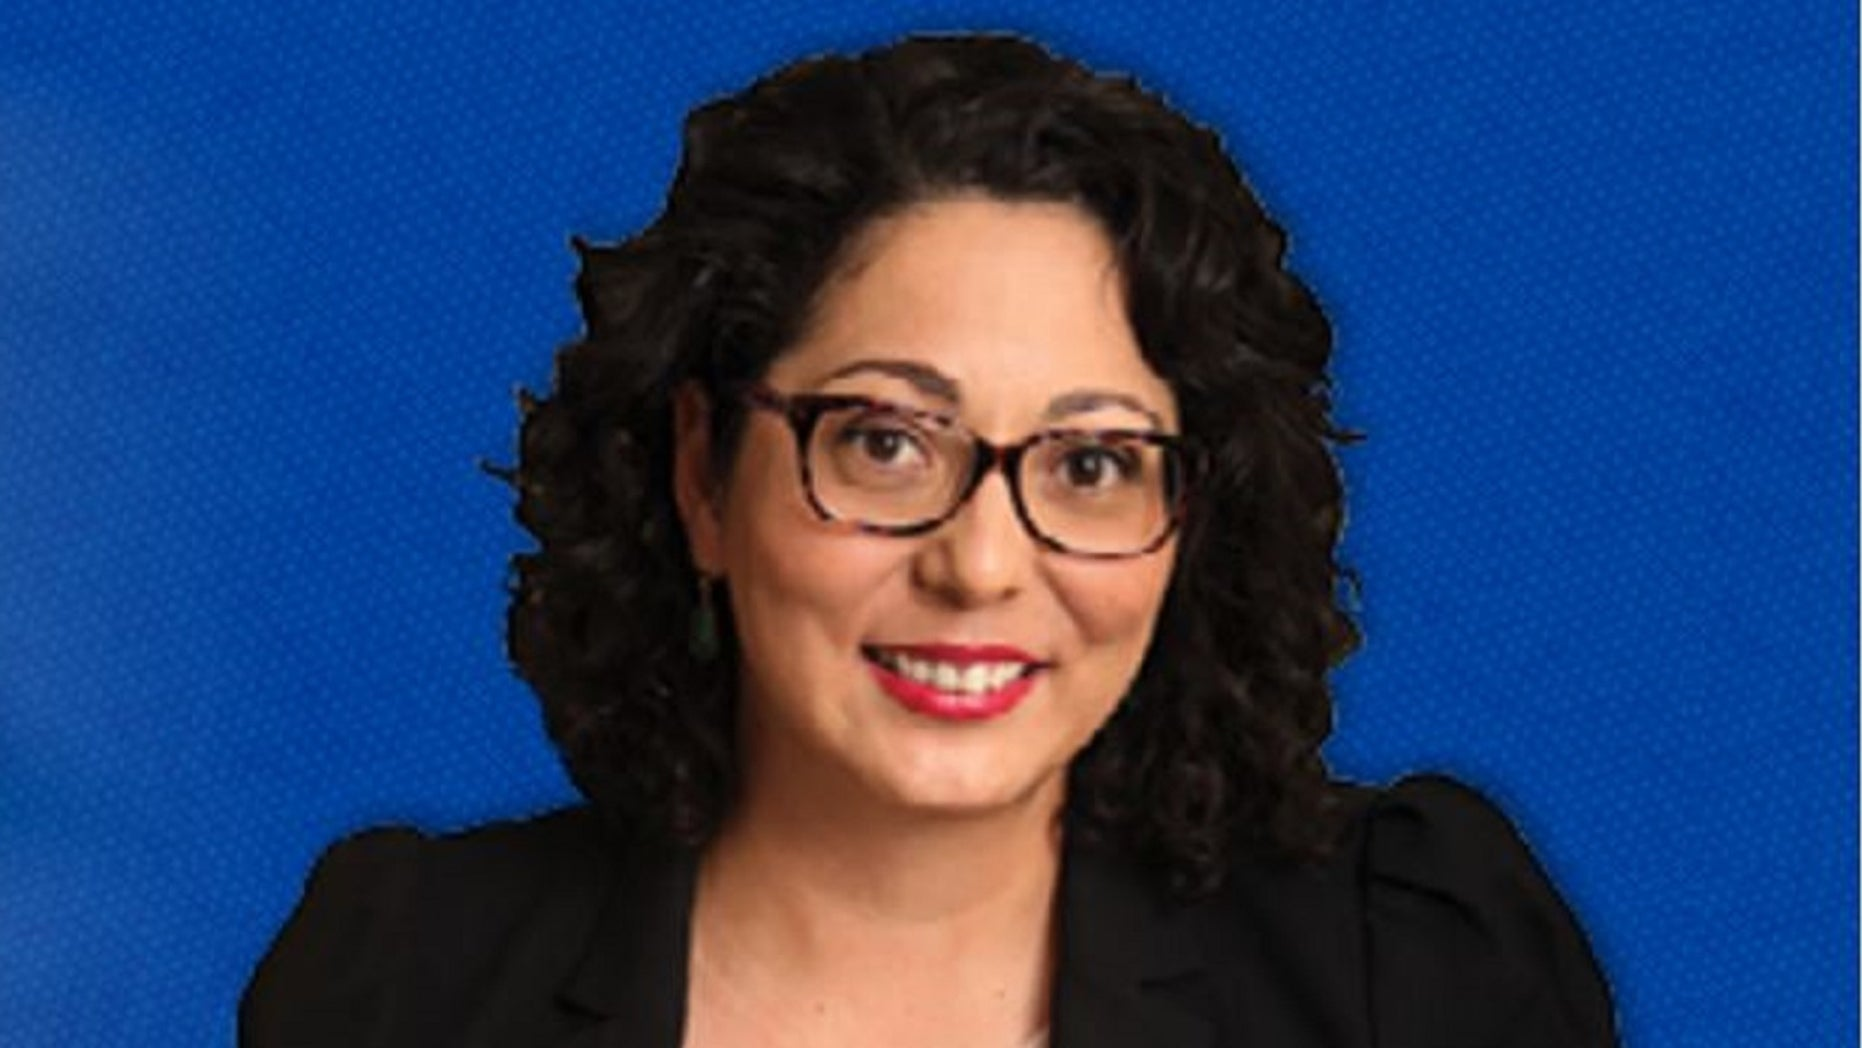 """California state Assemblywoman Cristina Garcia was """"overly familiar"""" with a former legislative male staffer, an investigator said, according to a letterthis week from Assembly Speaker Anthony Rendon."""